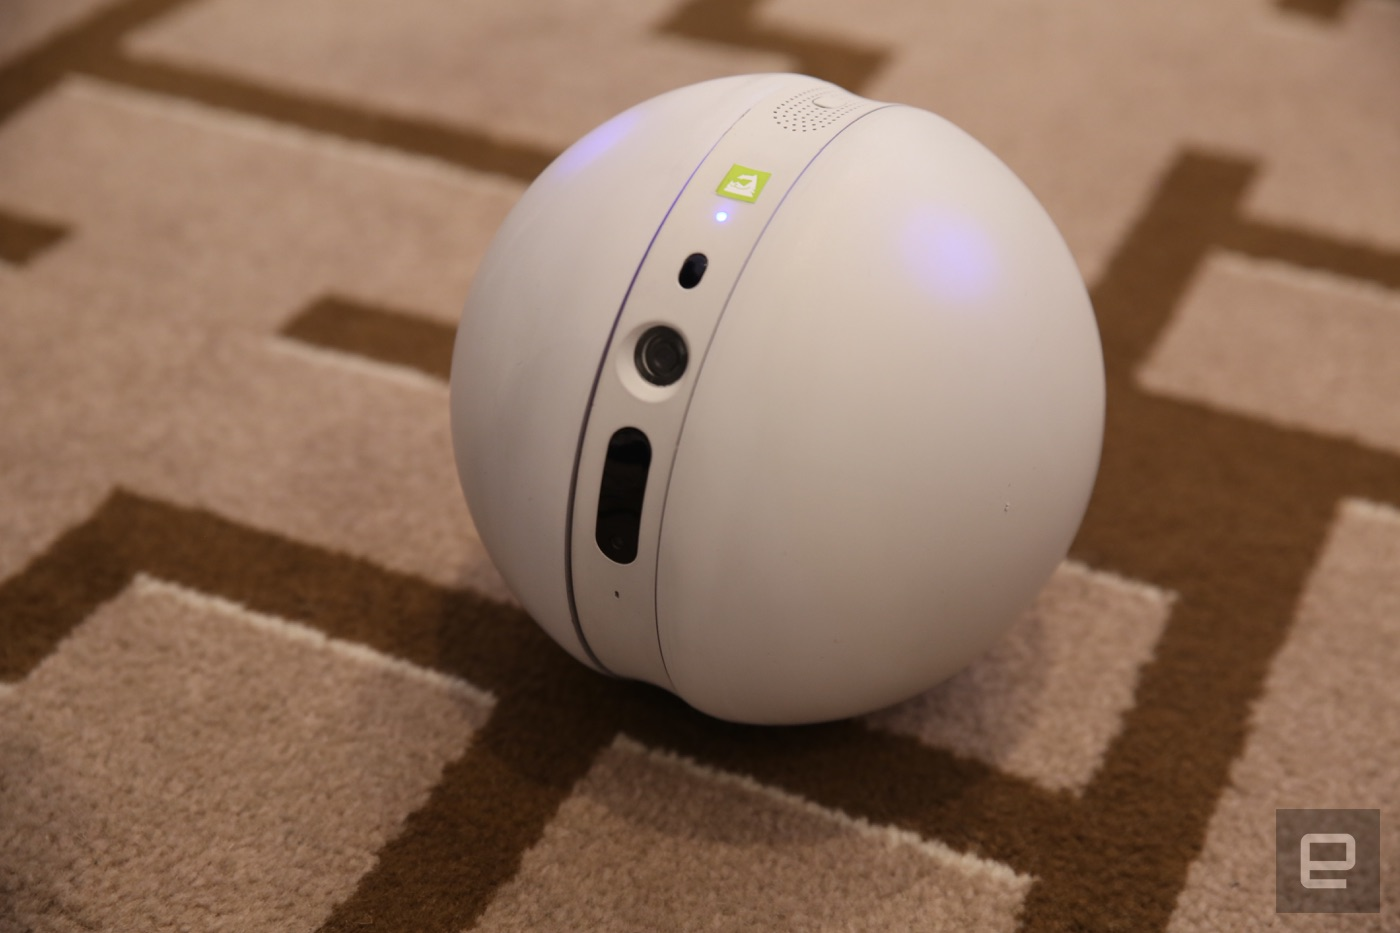 LG made a robot ball and a VR headset for the G5